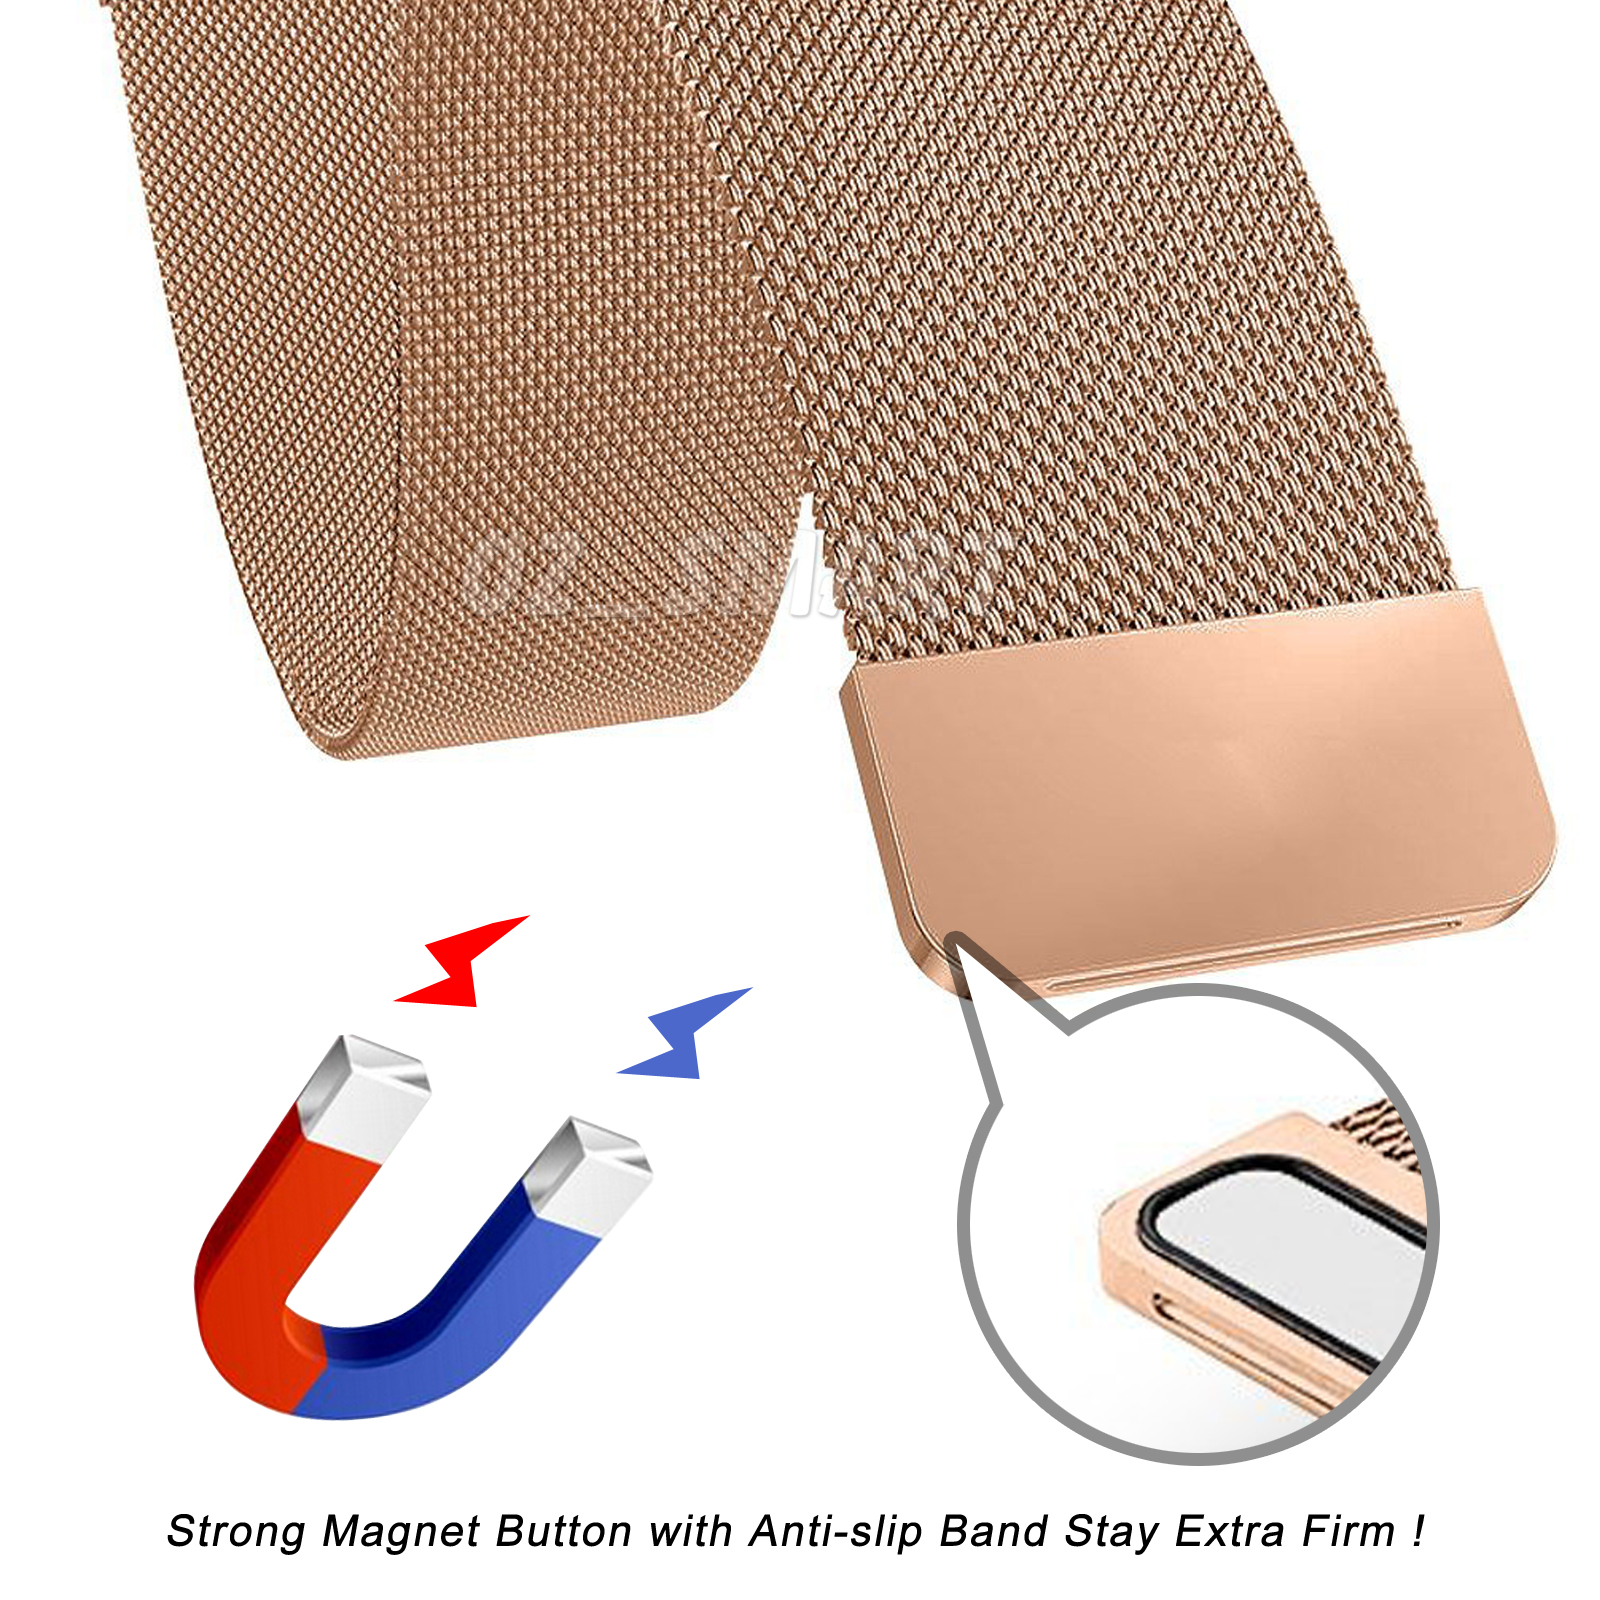 Metal Stainless Steel Milanese Loop Wristband Strap For Fitbit.